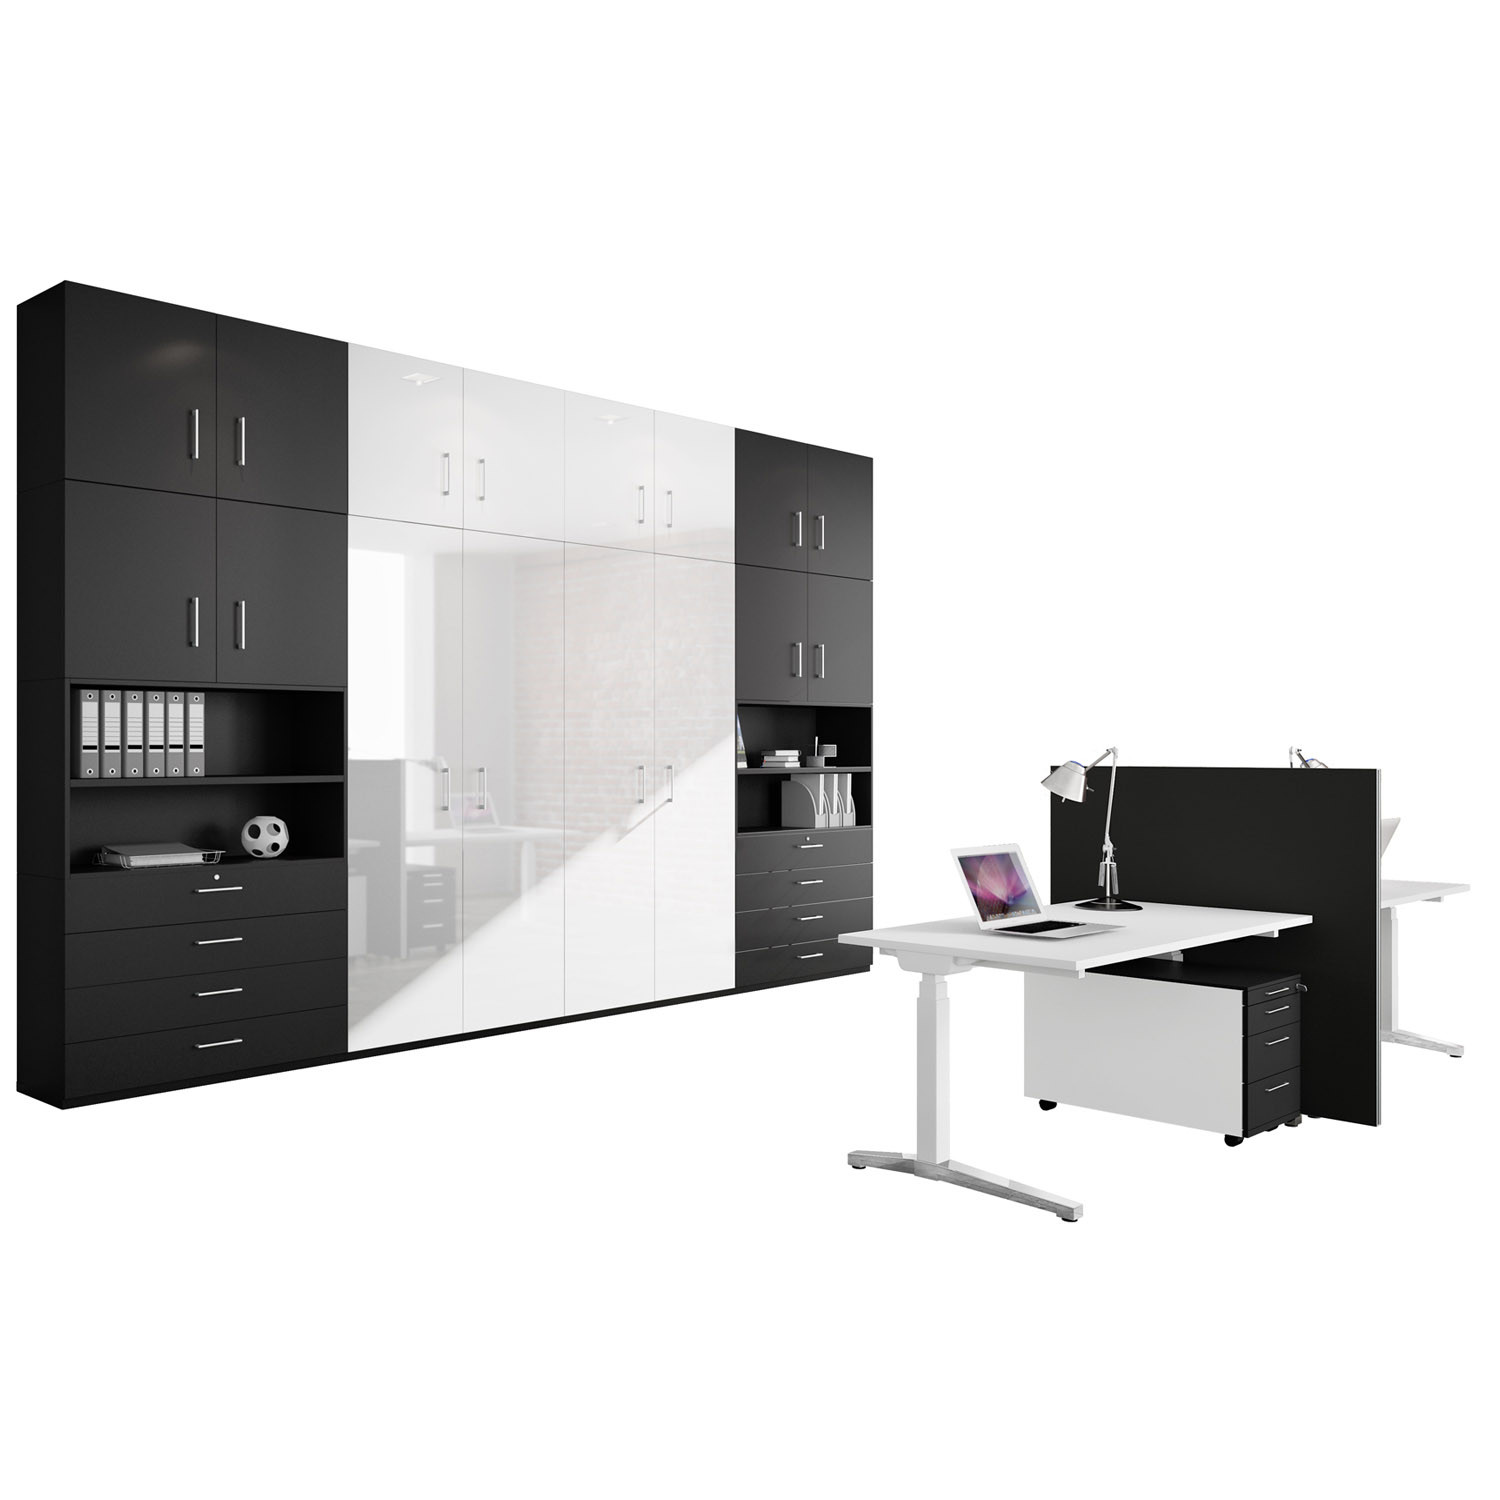 Canvaro Office Desk with Allvia Storage